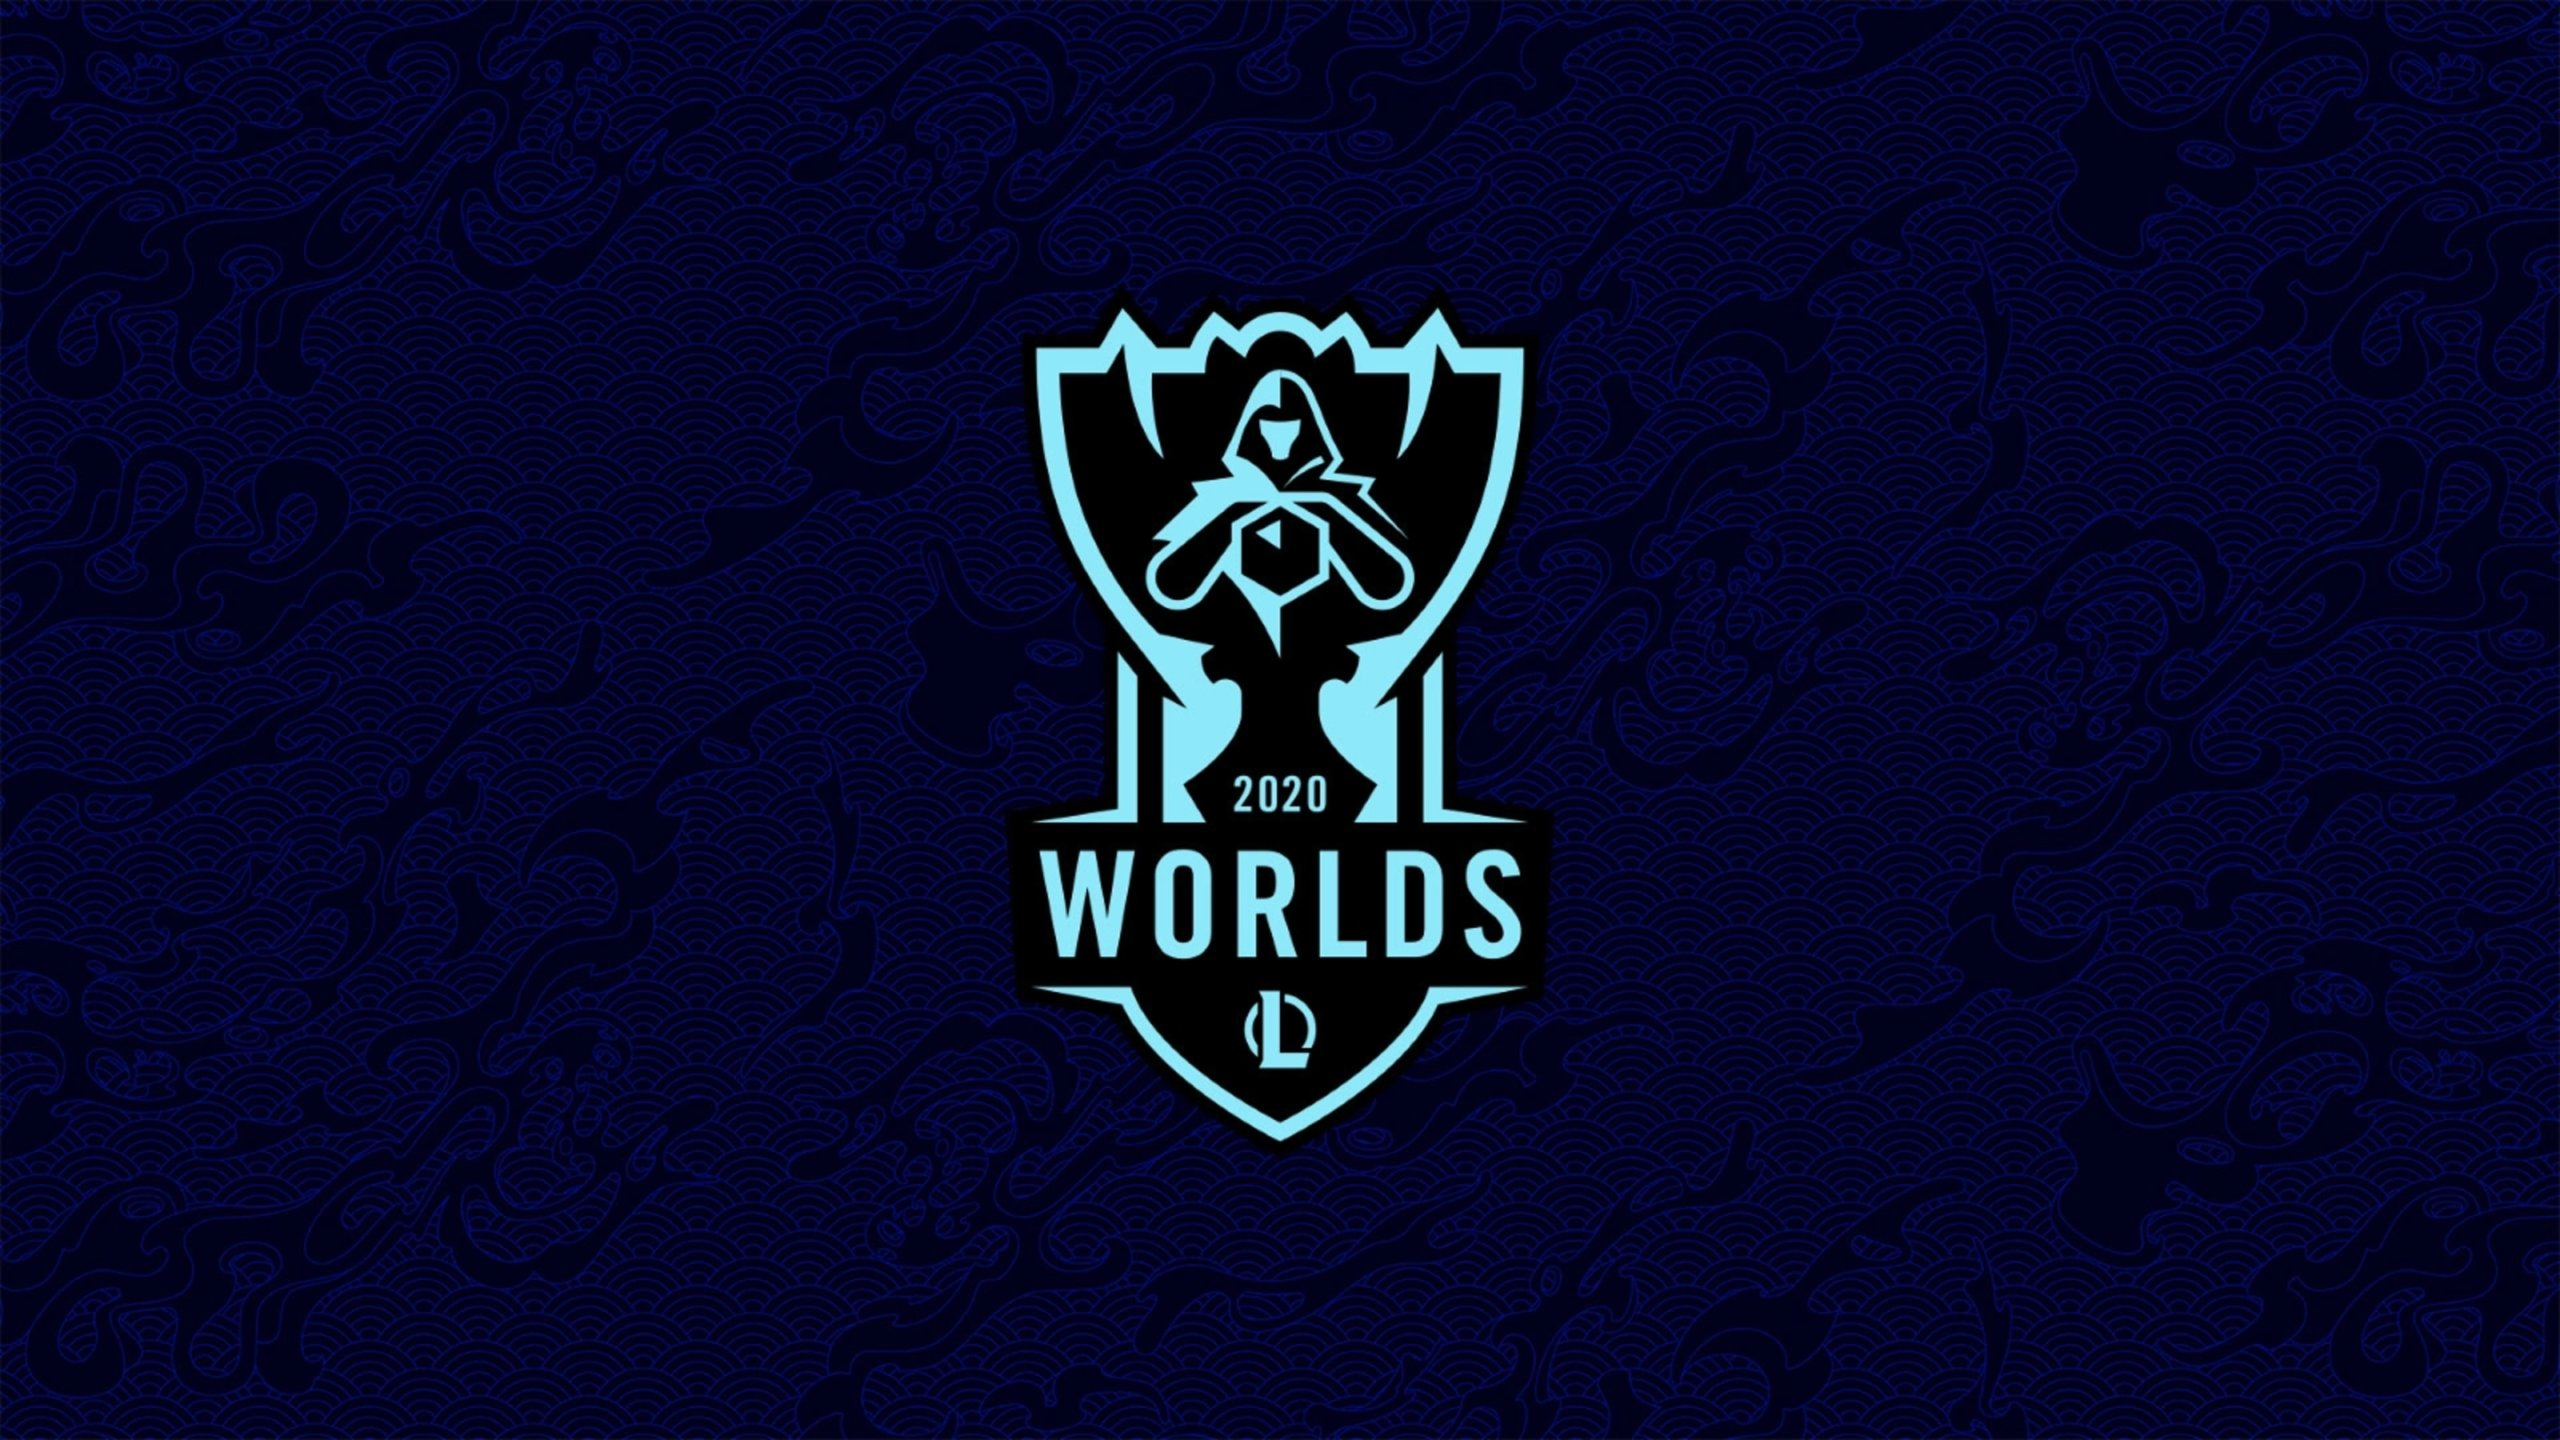 worlds 2020 league of legends